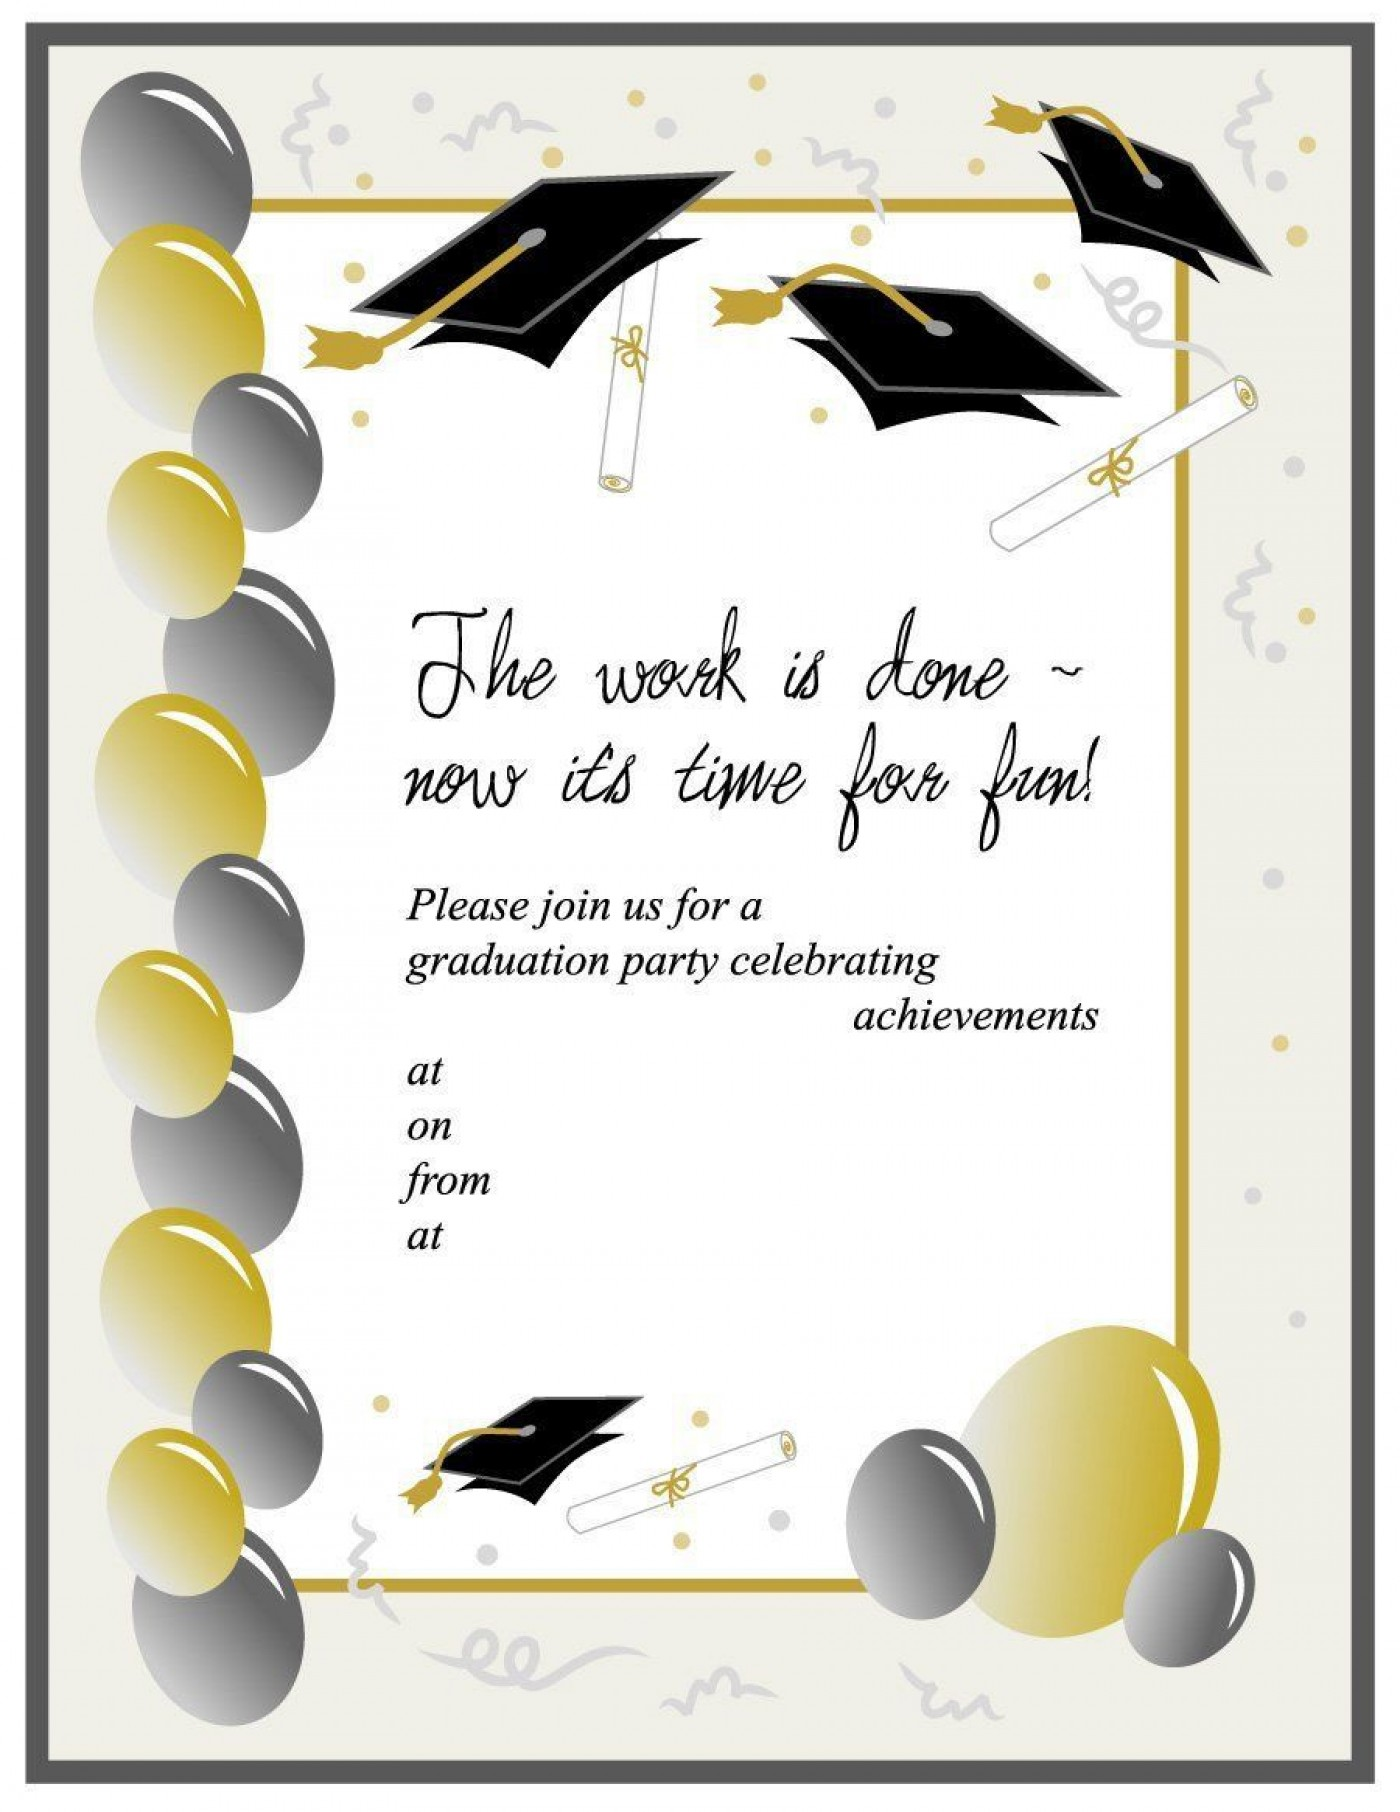 005 Stirring Microsoft Word Graduation Party Invitation Template High Resolution 1400